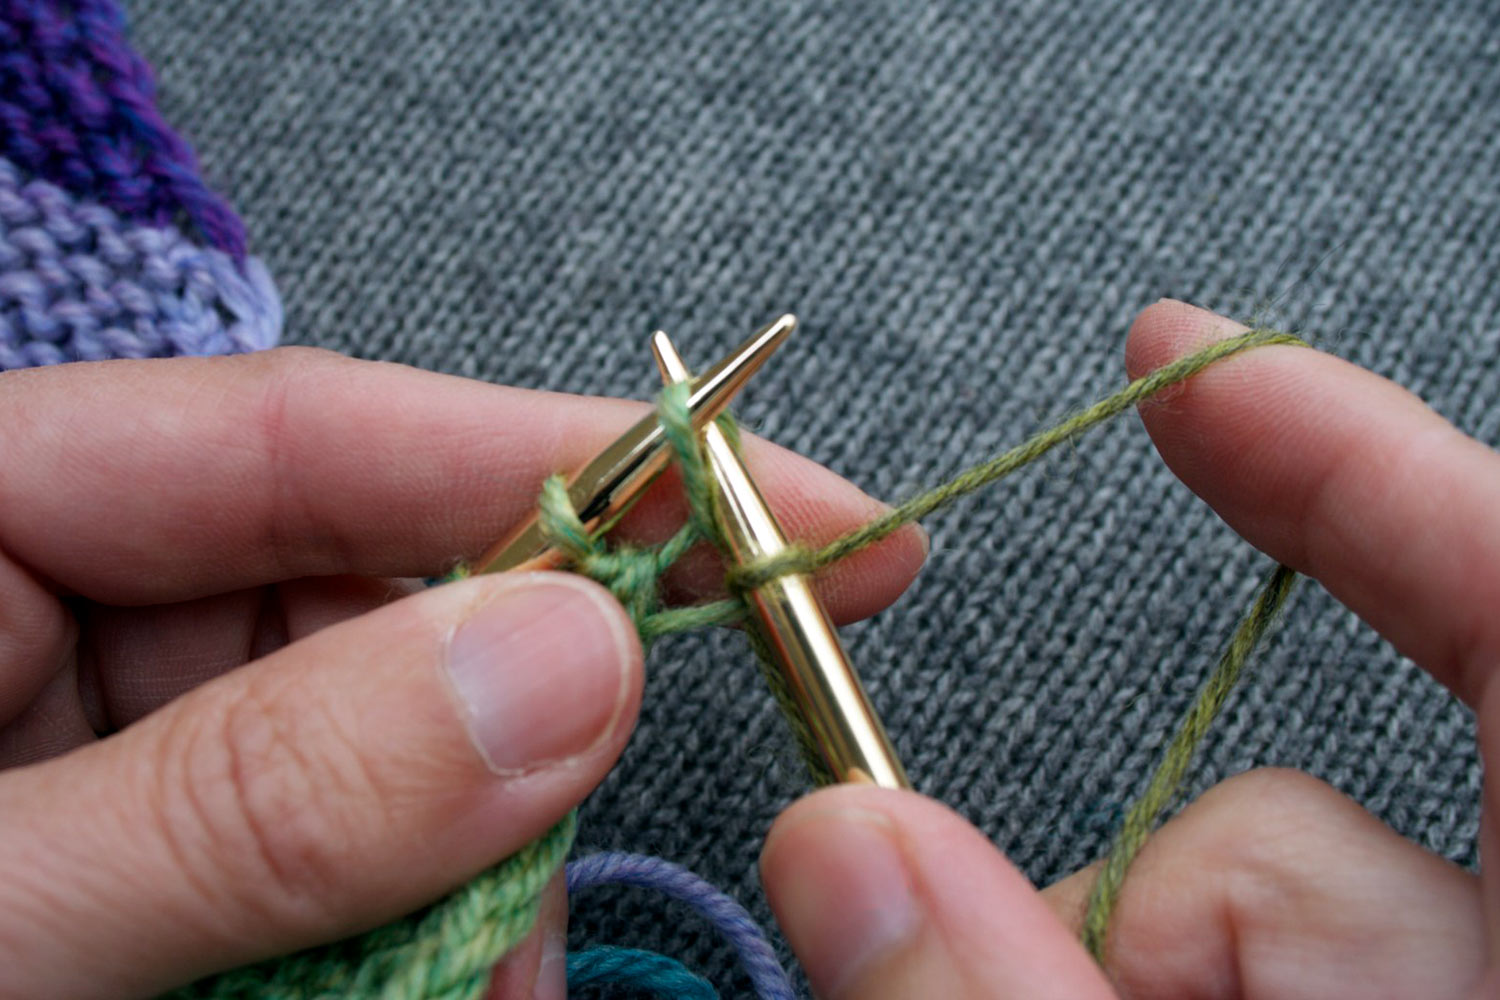 Right needle has already knit into the front of the next stitch on left needle and is now knitting into the back of the same stitch.